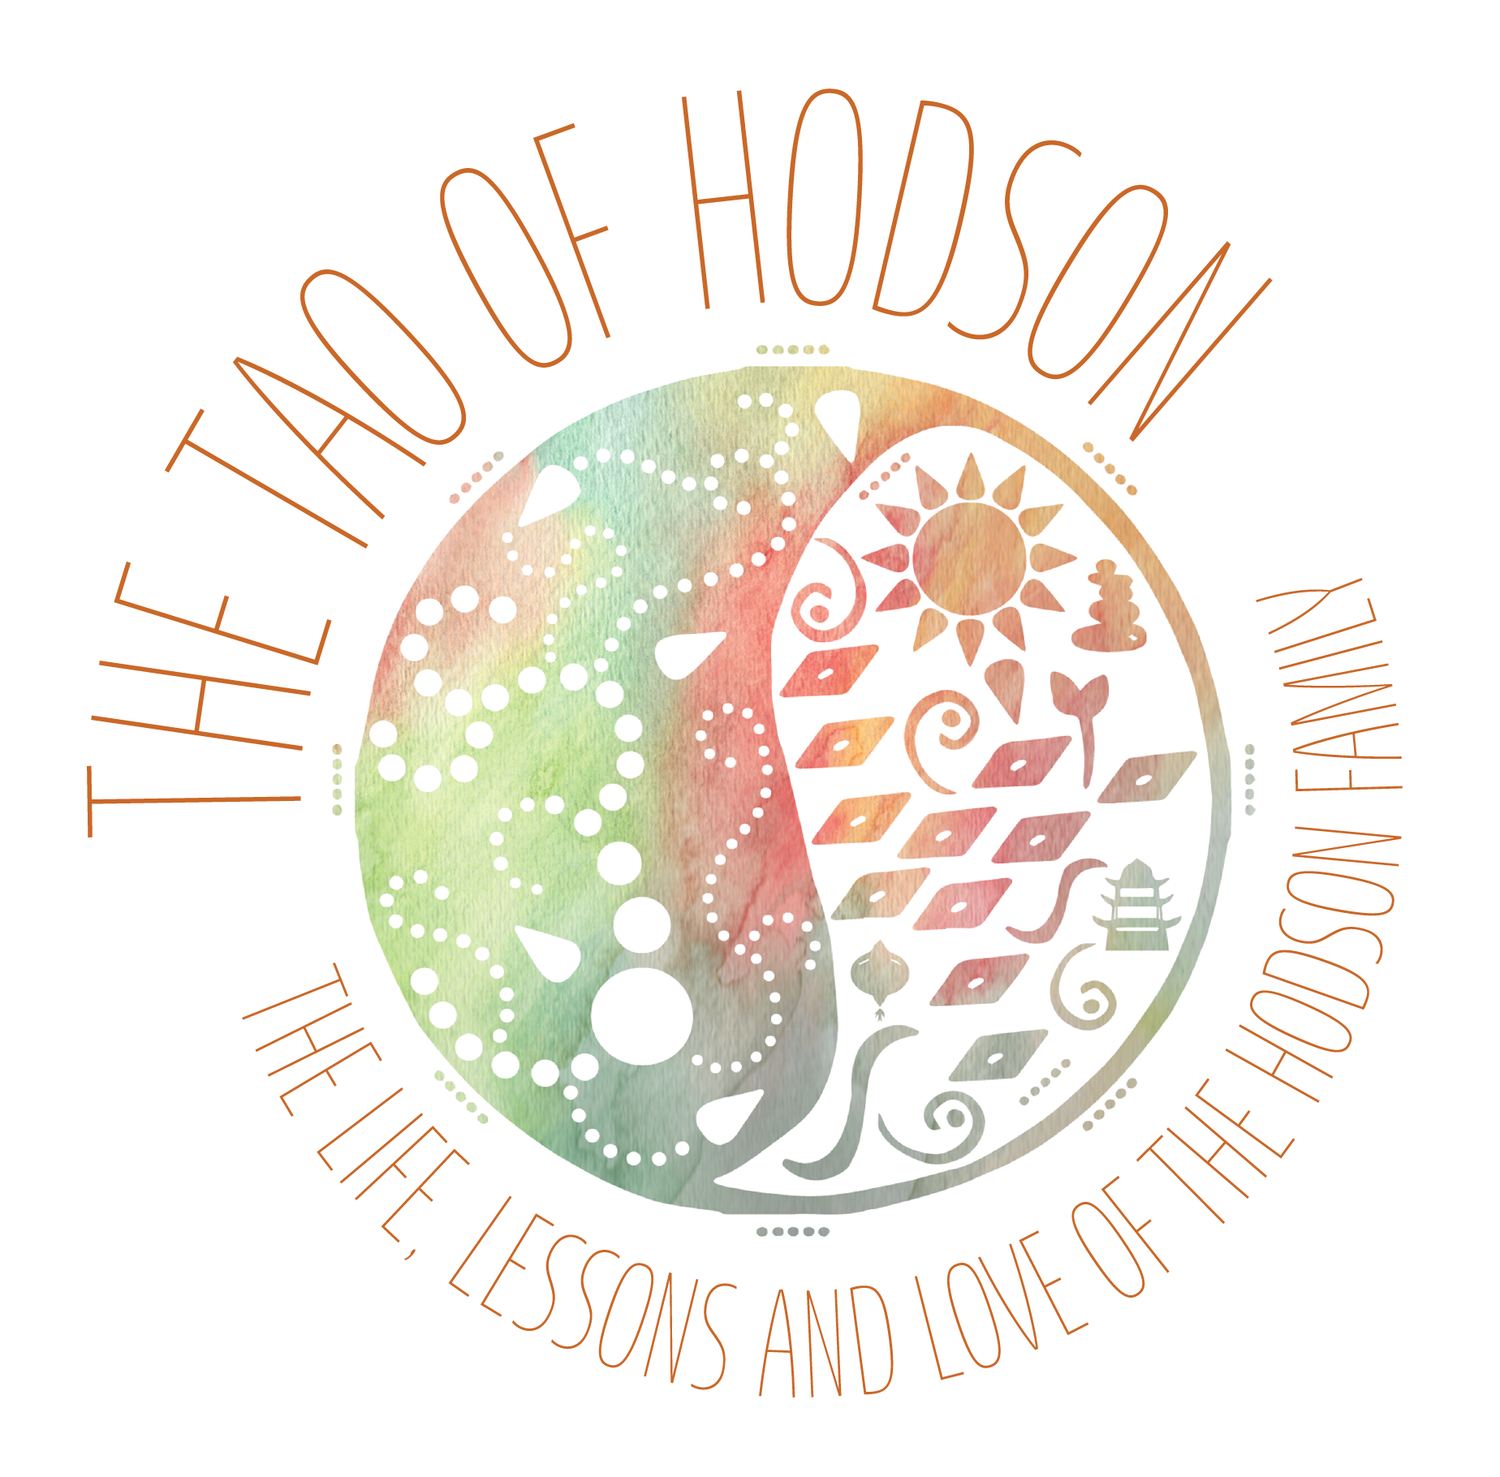 The Tao of Hodson